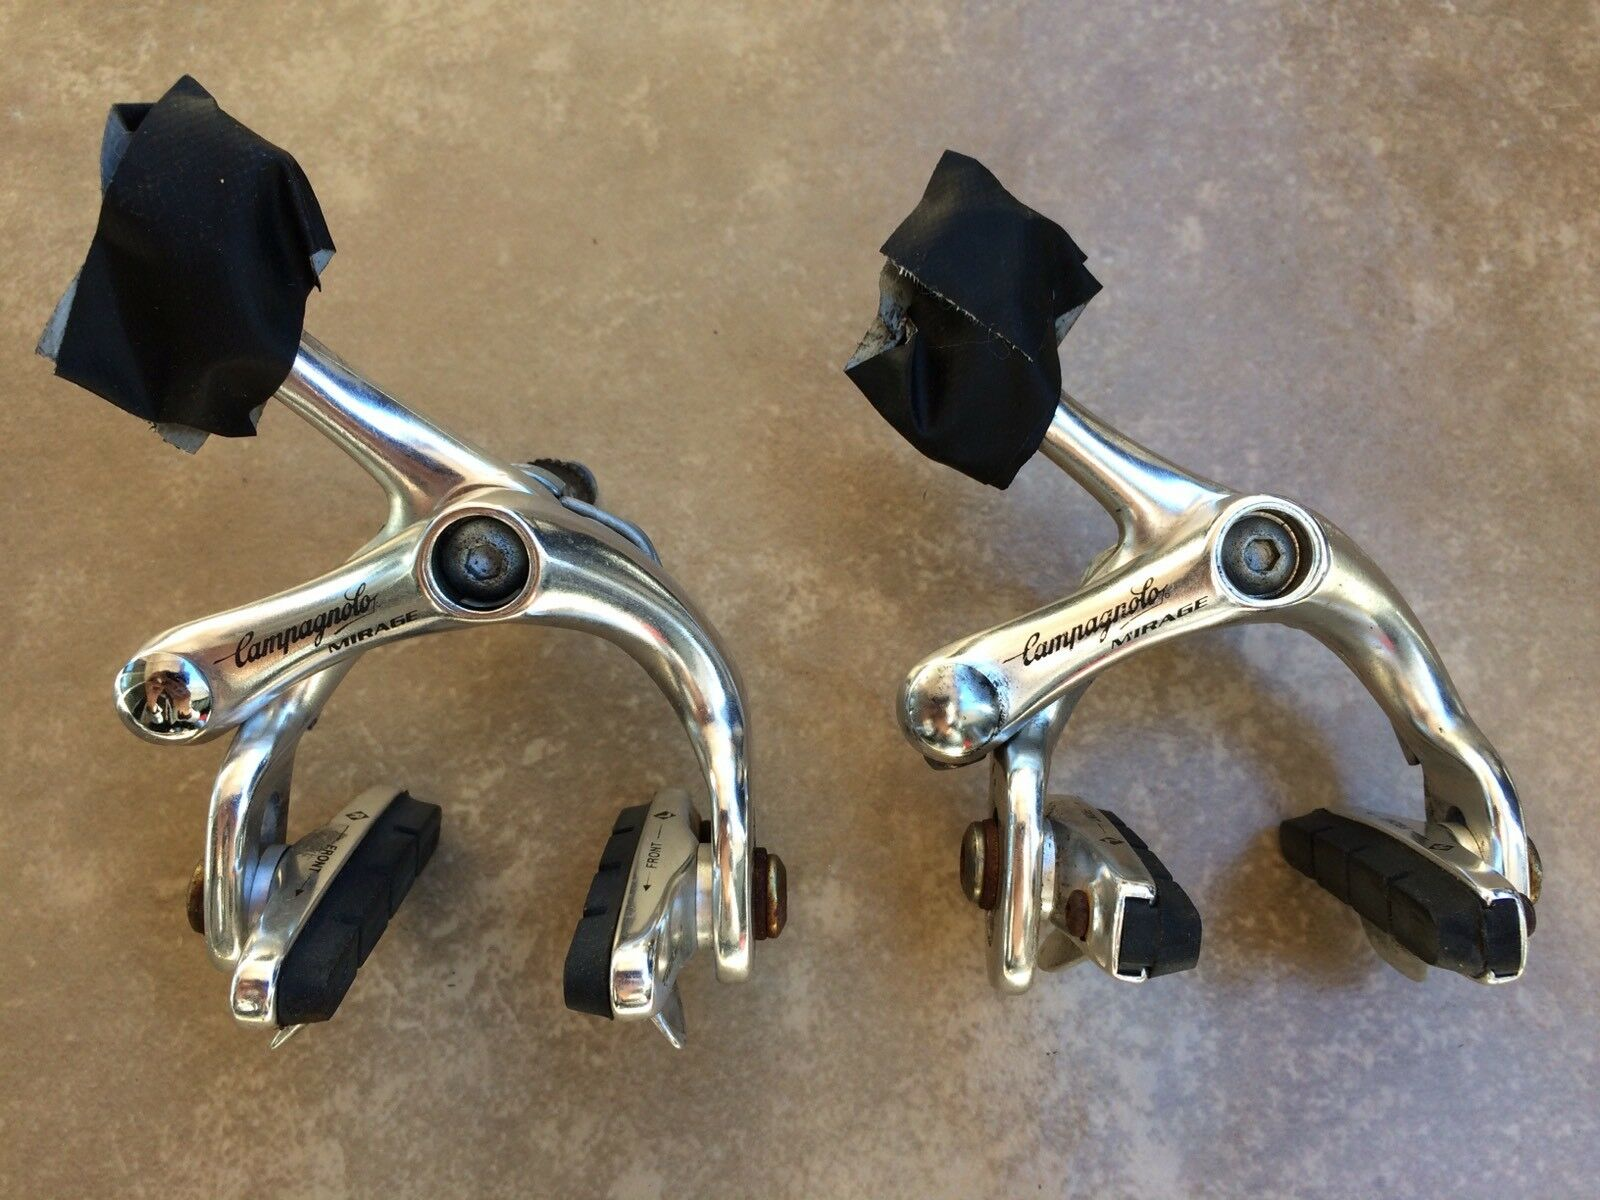 Vintage Campagnolo Mirage single pivot road brake set  front and rear  up to 60% off